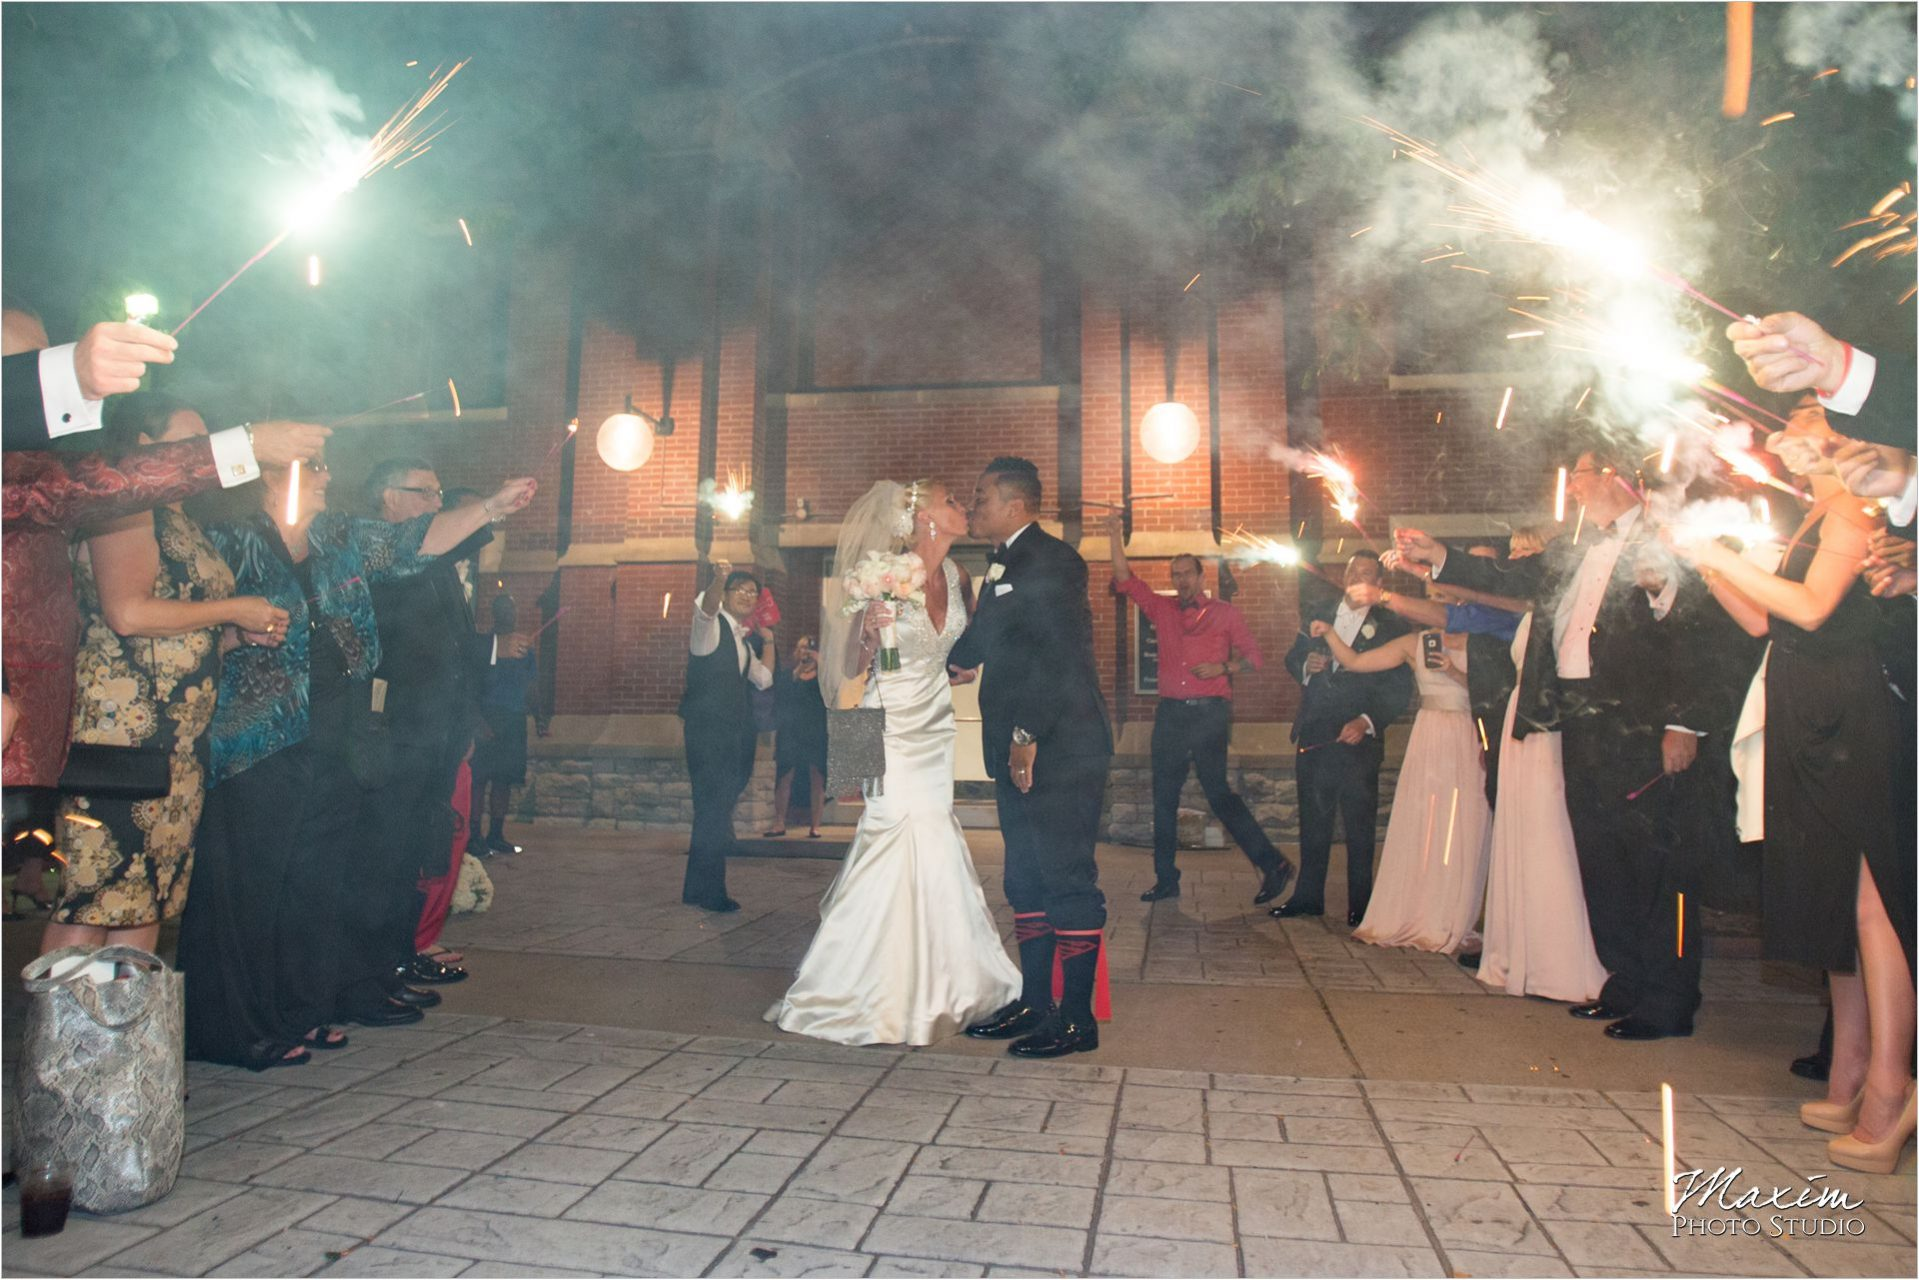 Cincinnati Wedding Photographers Music Hall Wedding Reception Sparkler exit